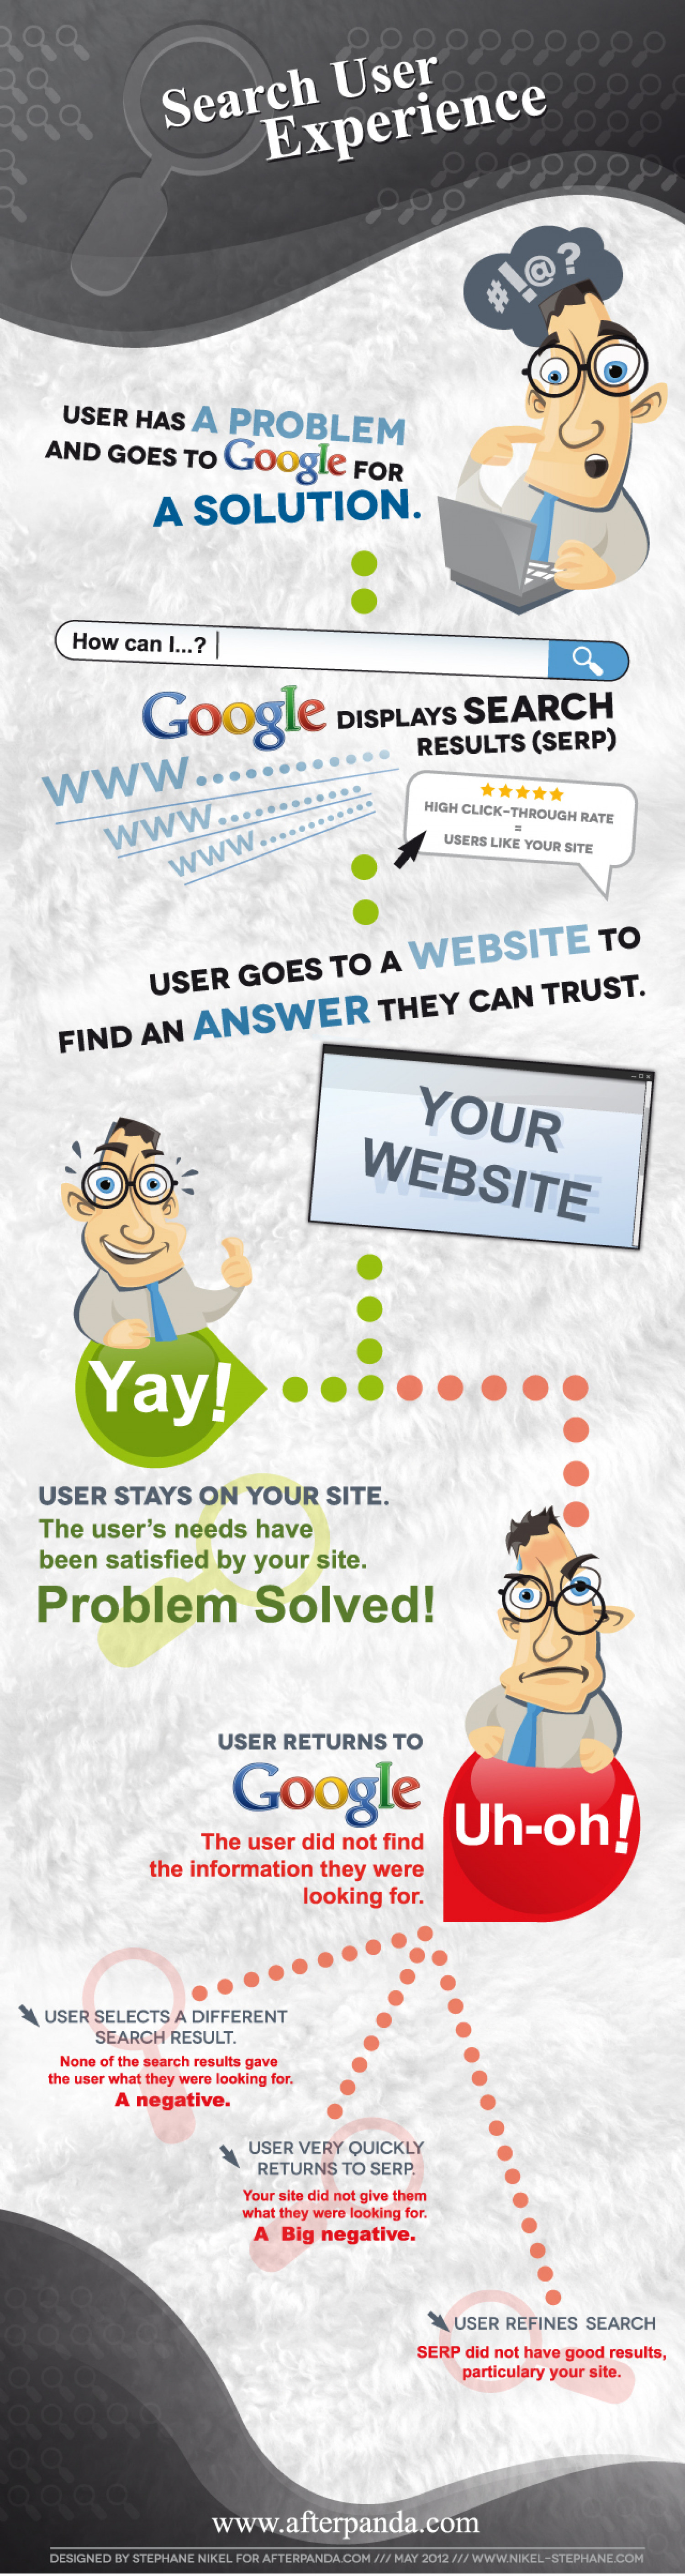 Search User Experience Infographic